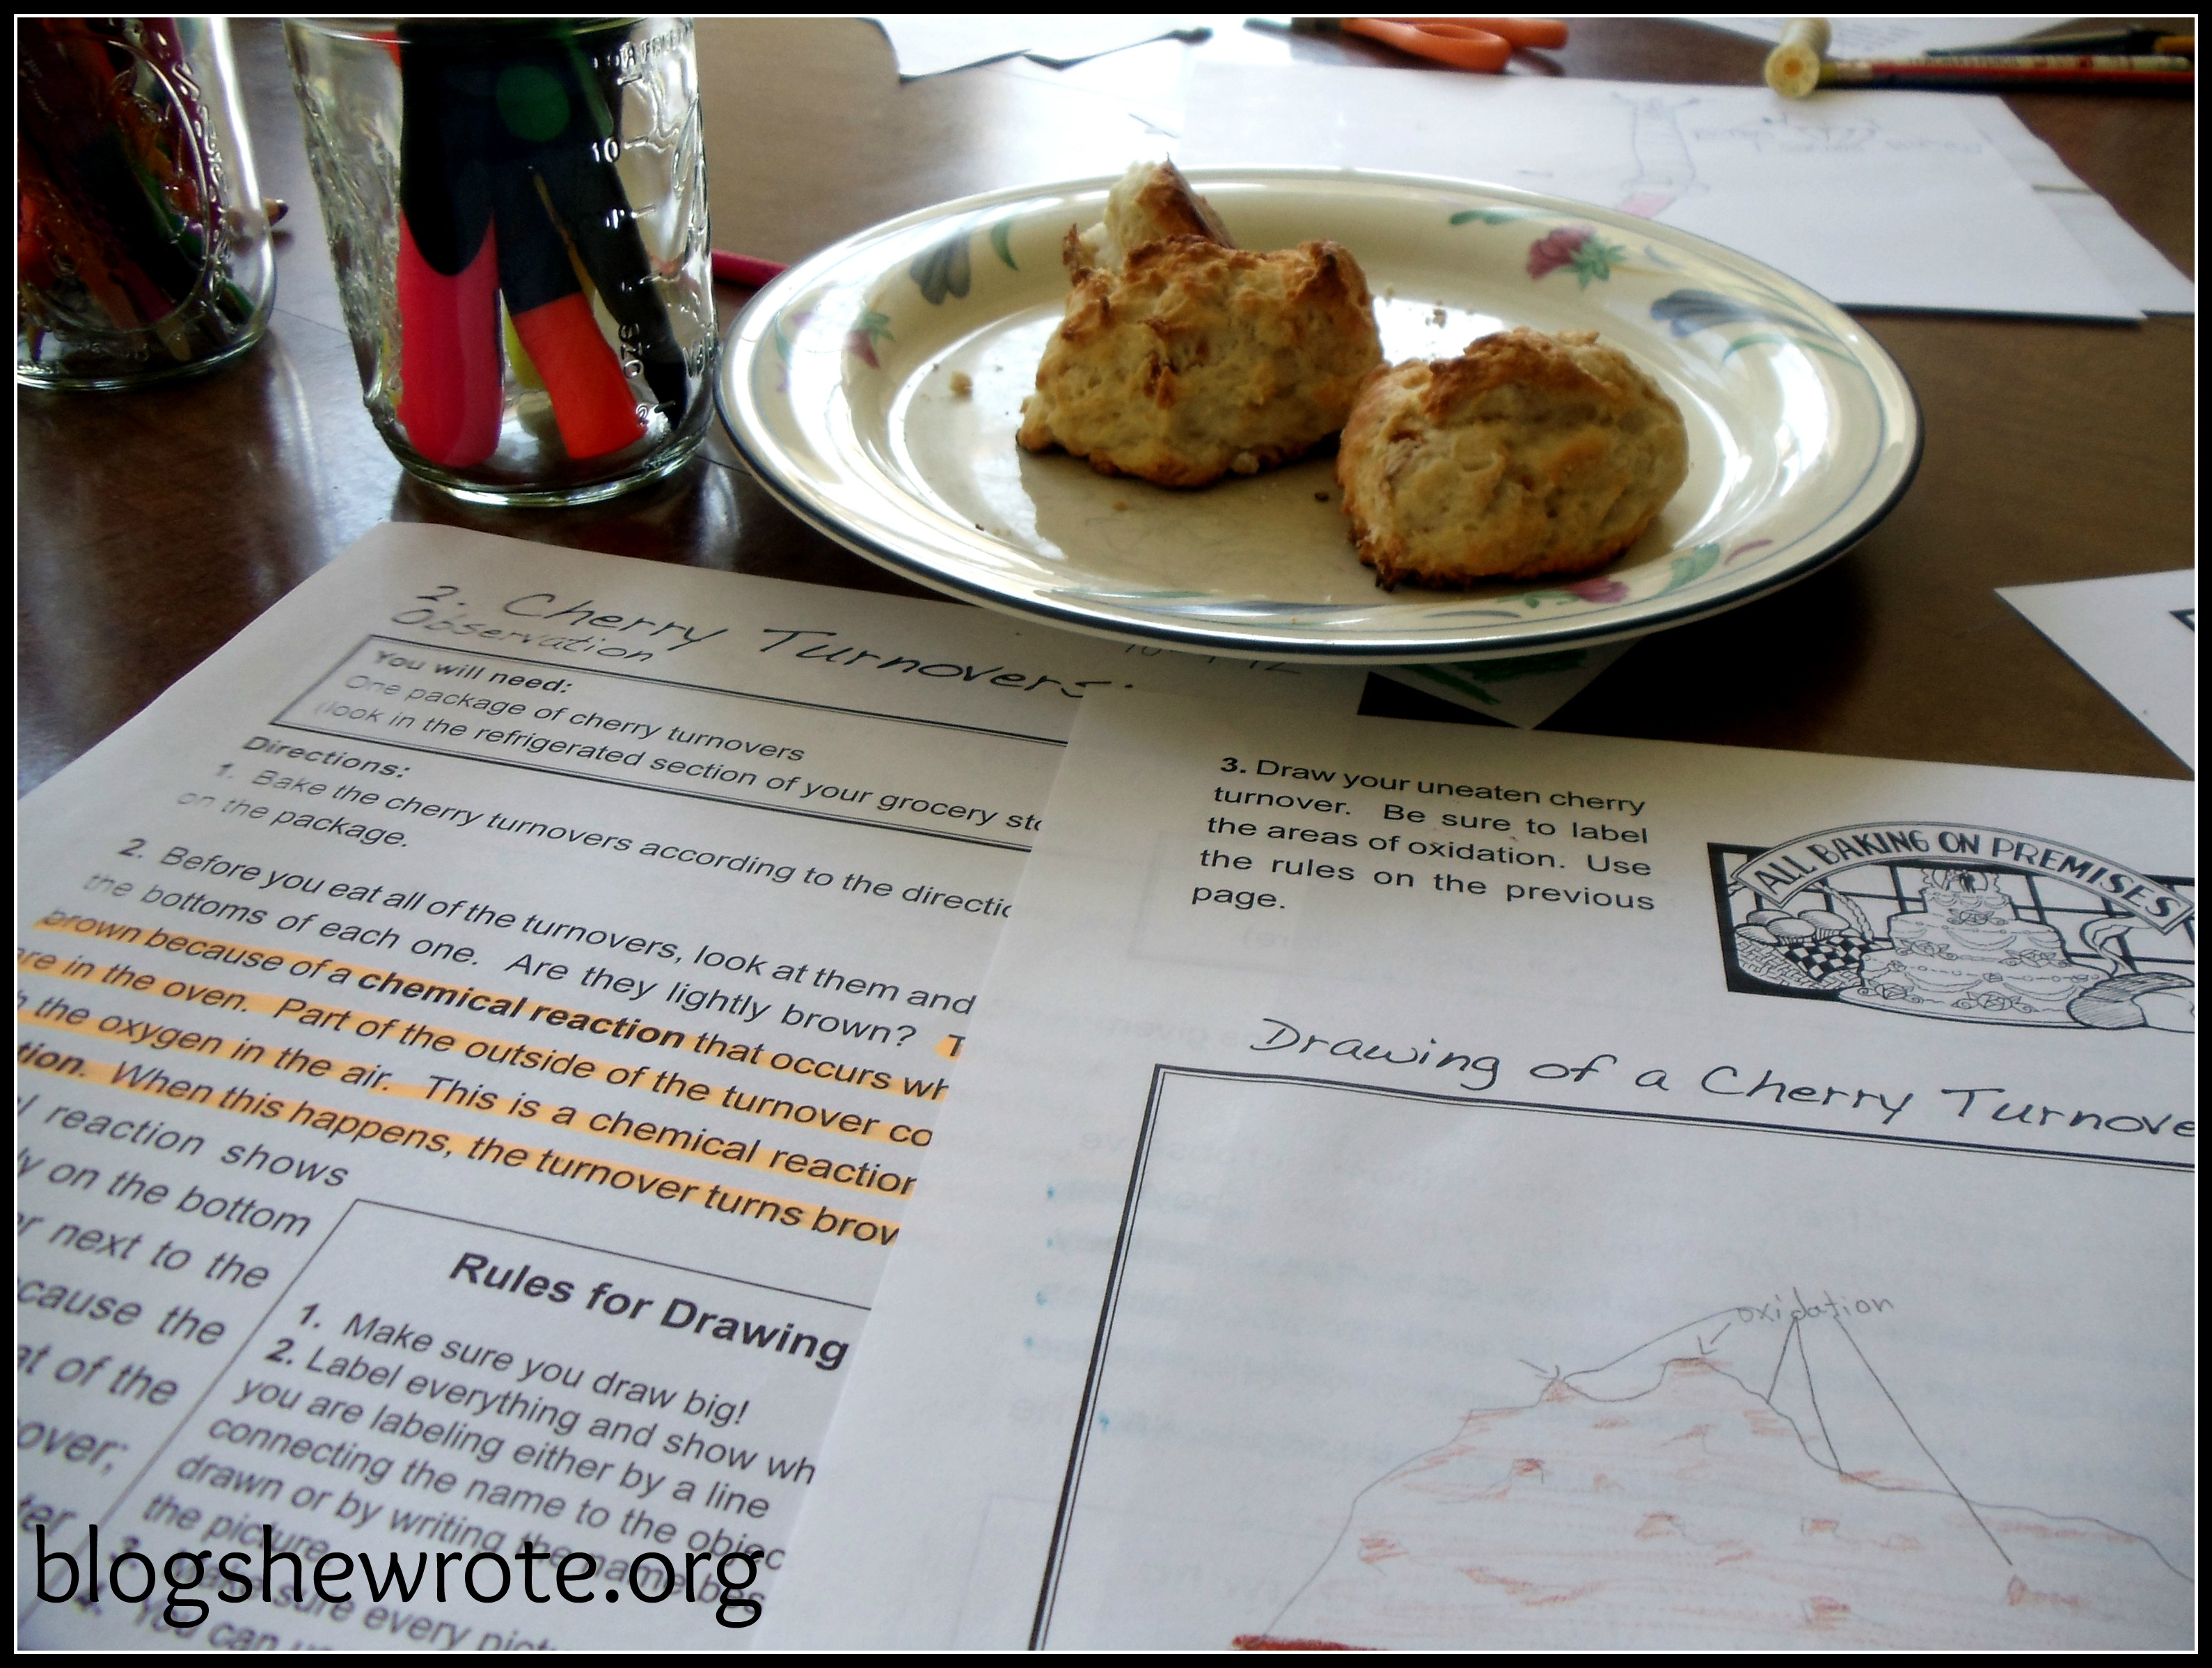 Blog She Wrote: Top Ten Educational Cookbooks on our Shelf